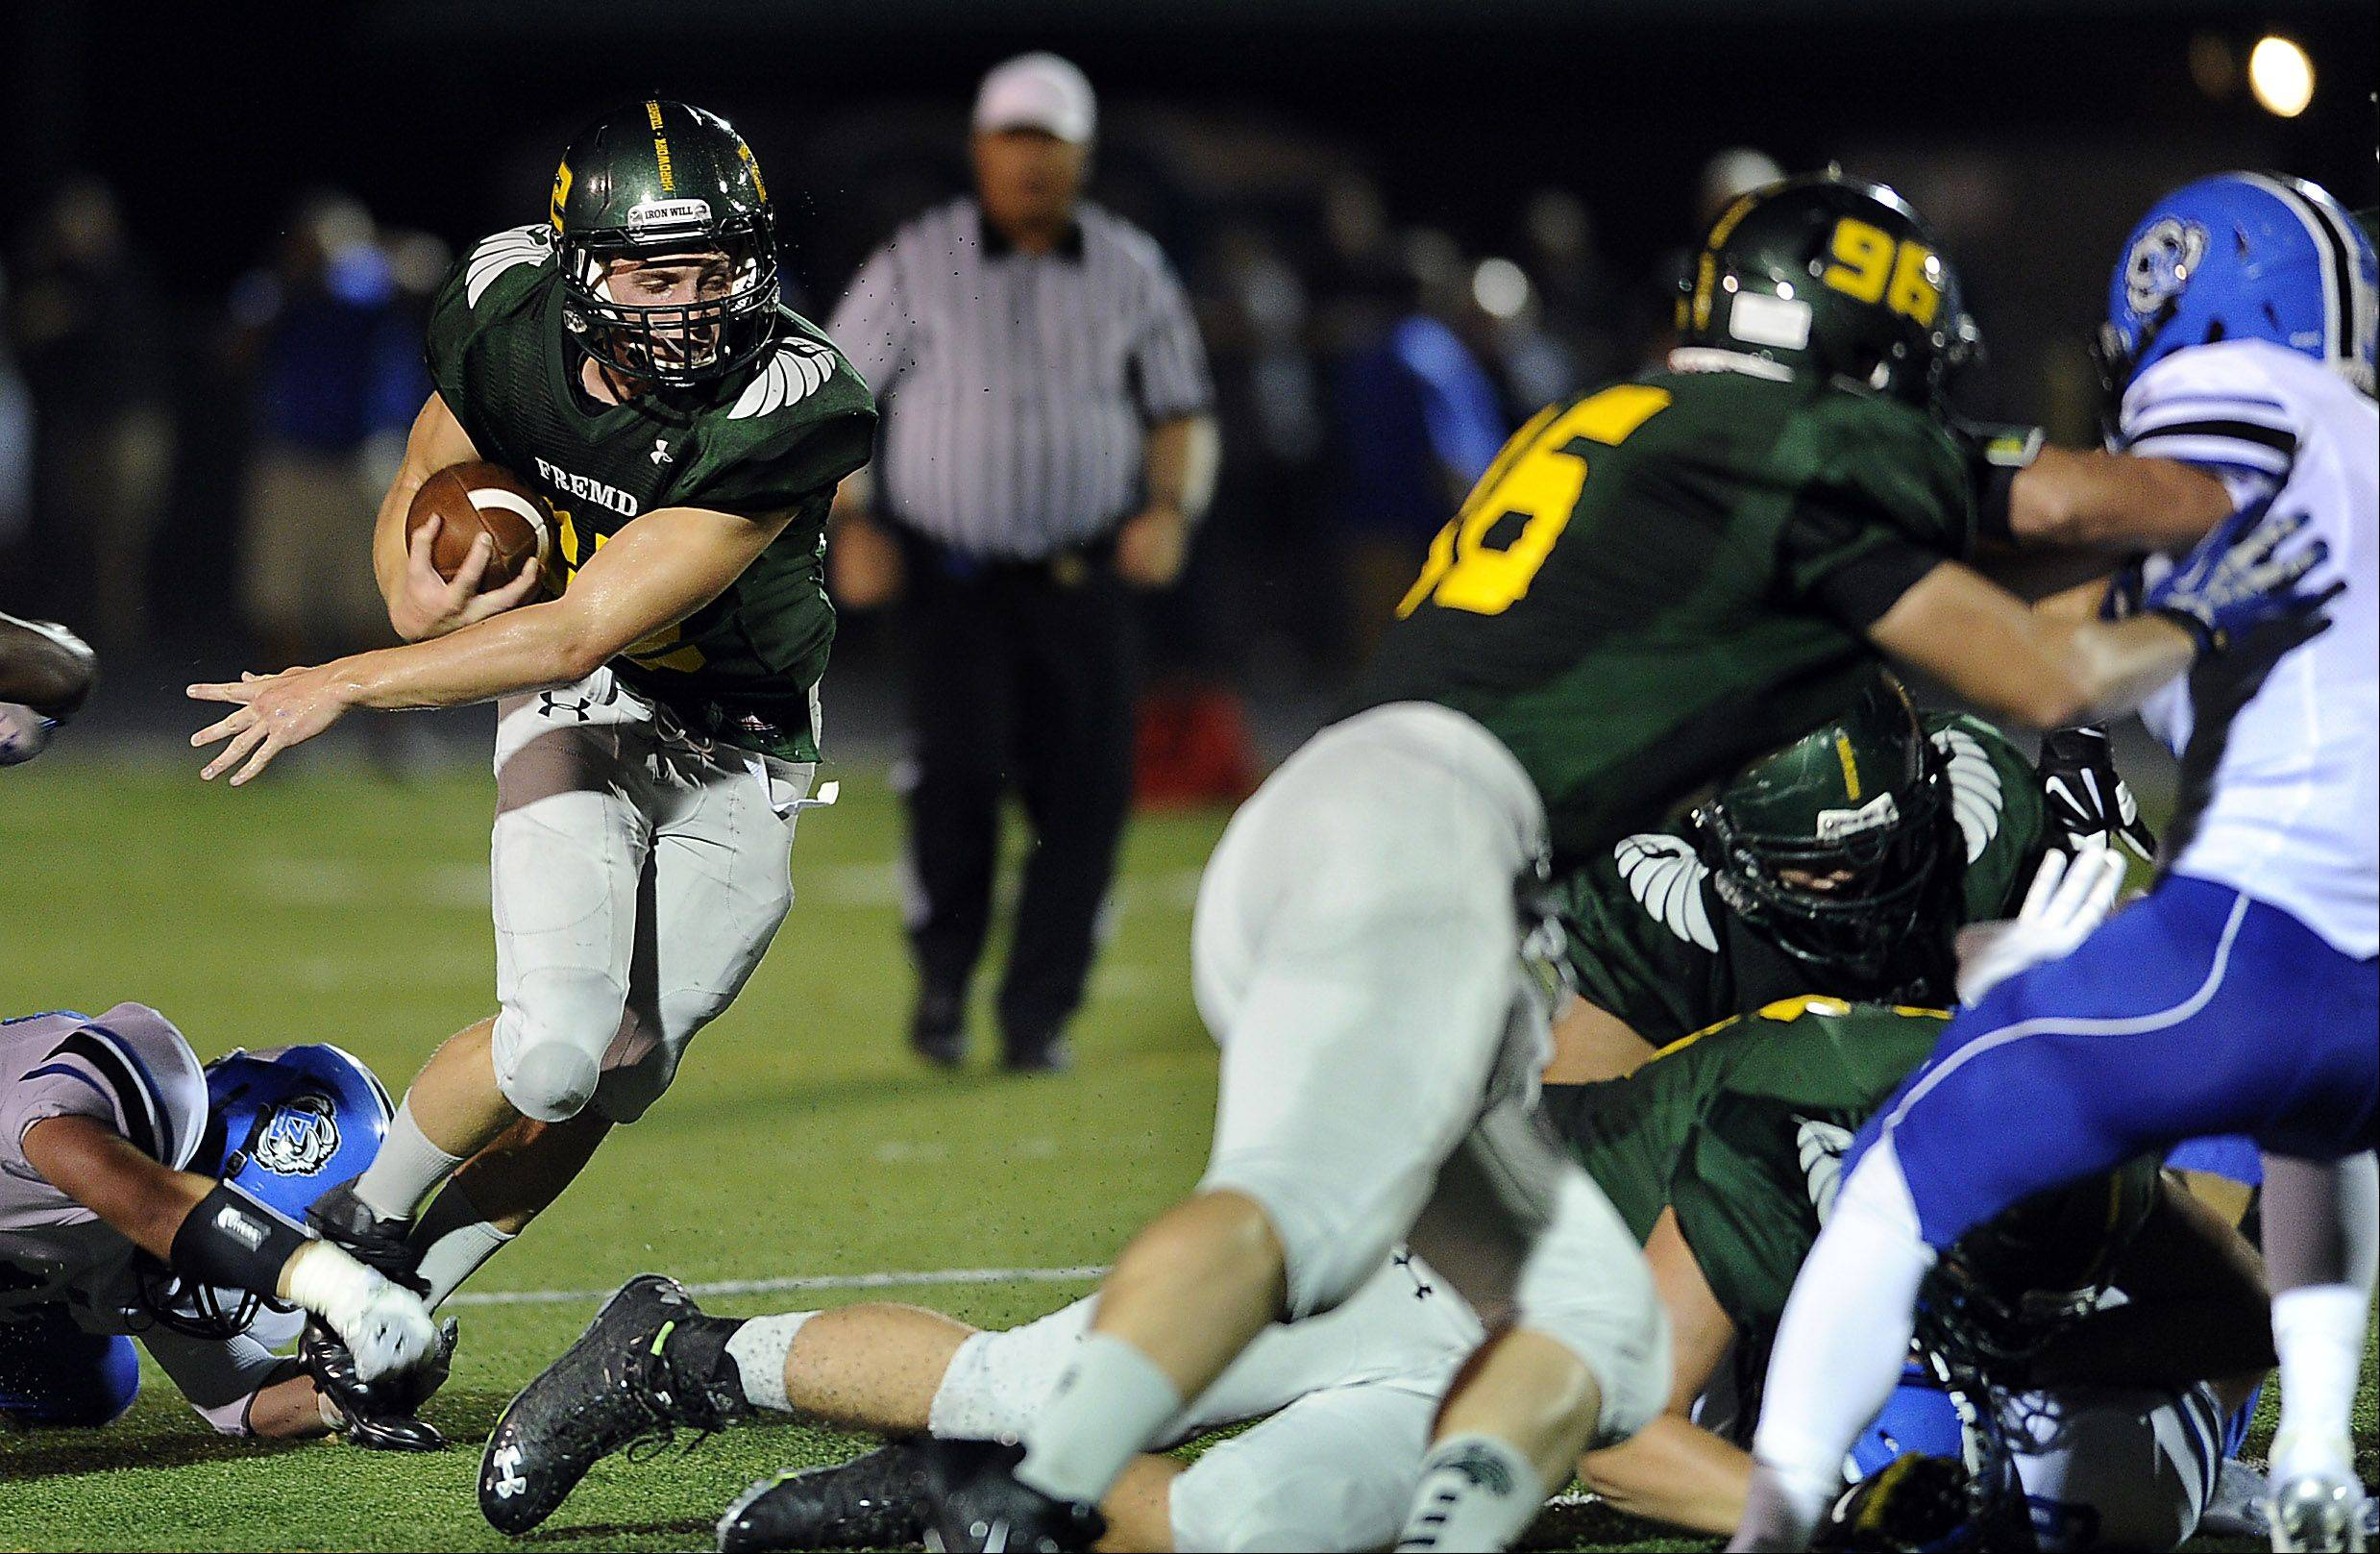 Fremd's Garrett Groot runs through Lake Zurich's defense in the first quarter.